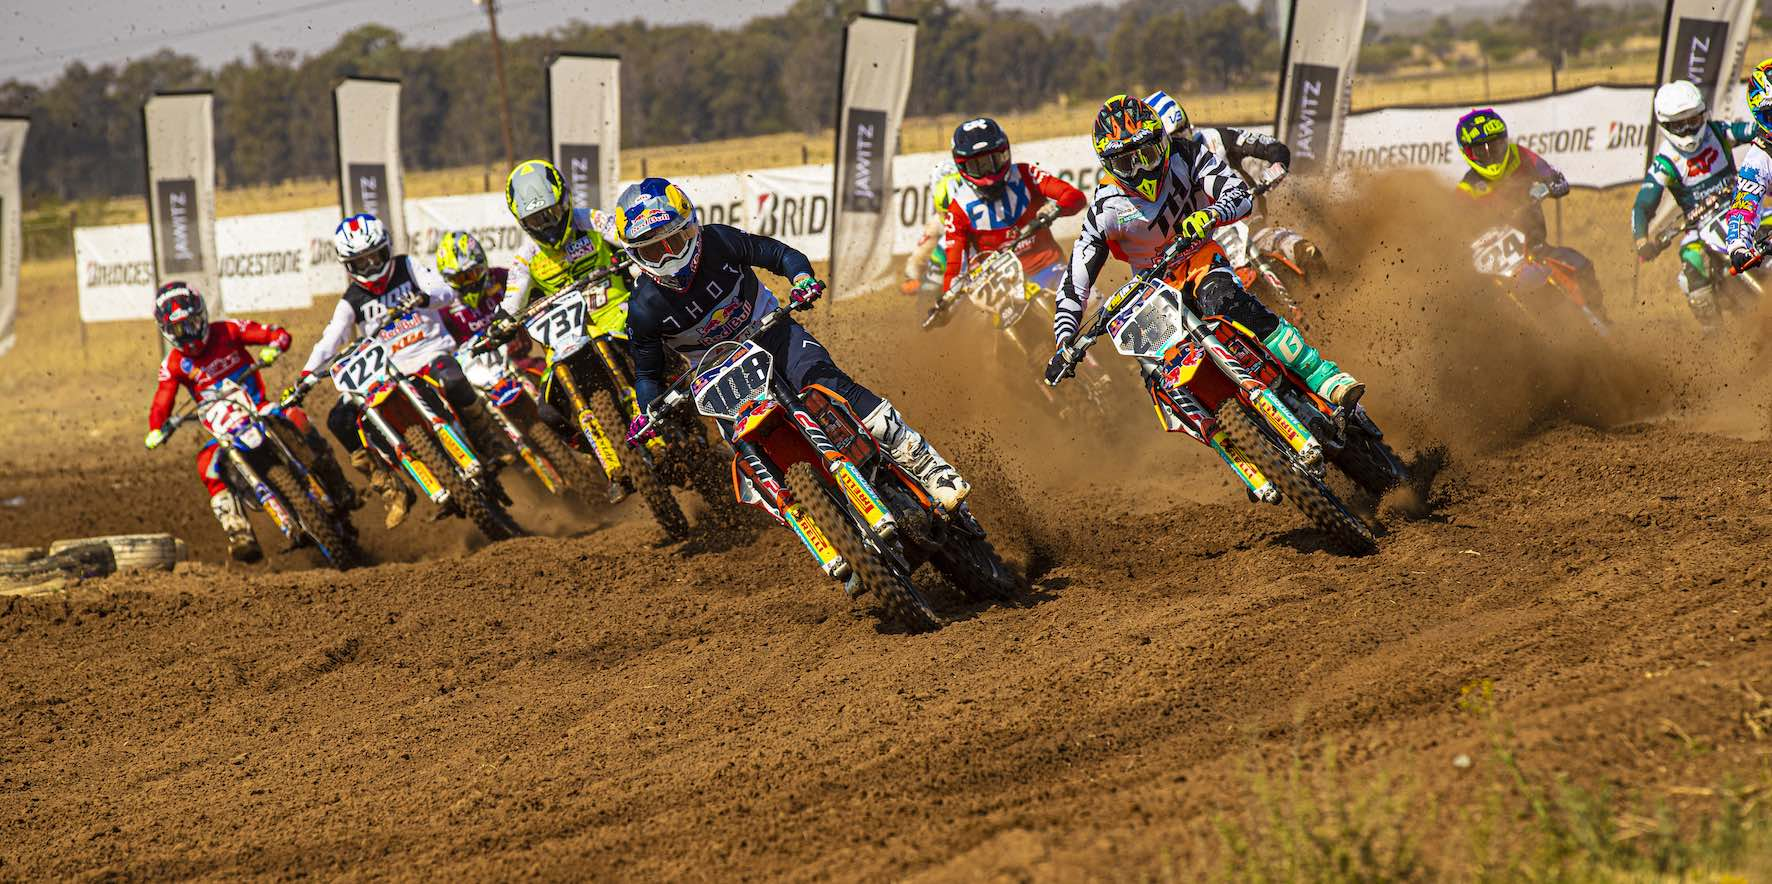 MX2 starts at the Motocross nationals in Welkom